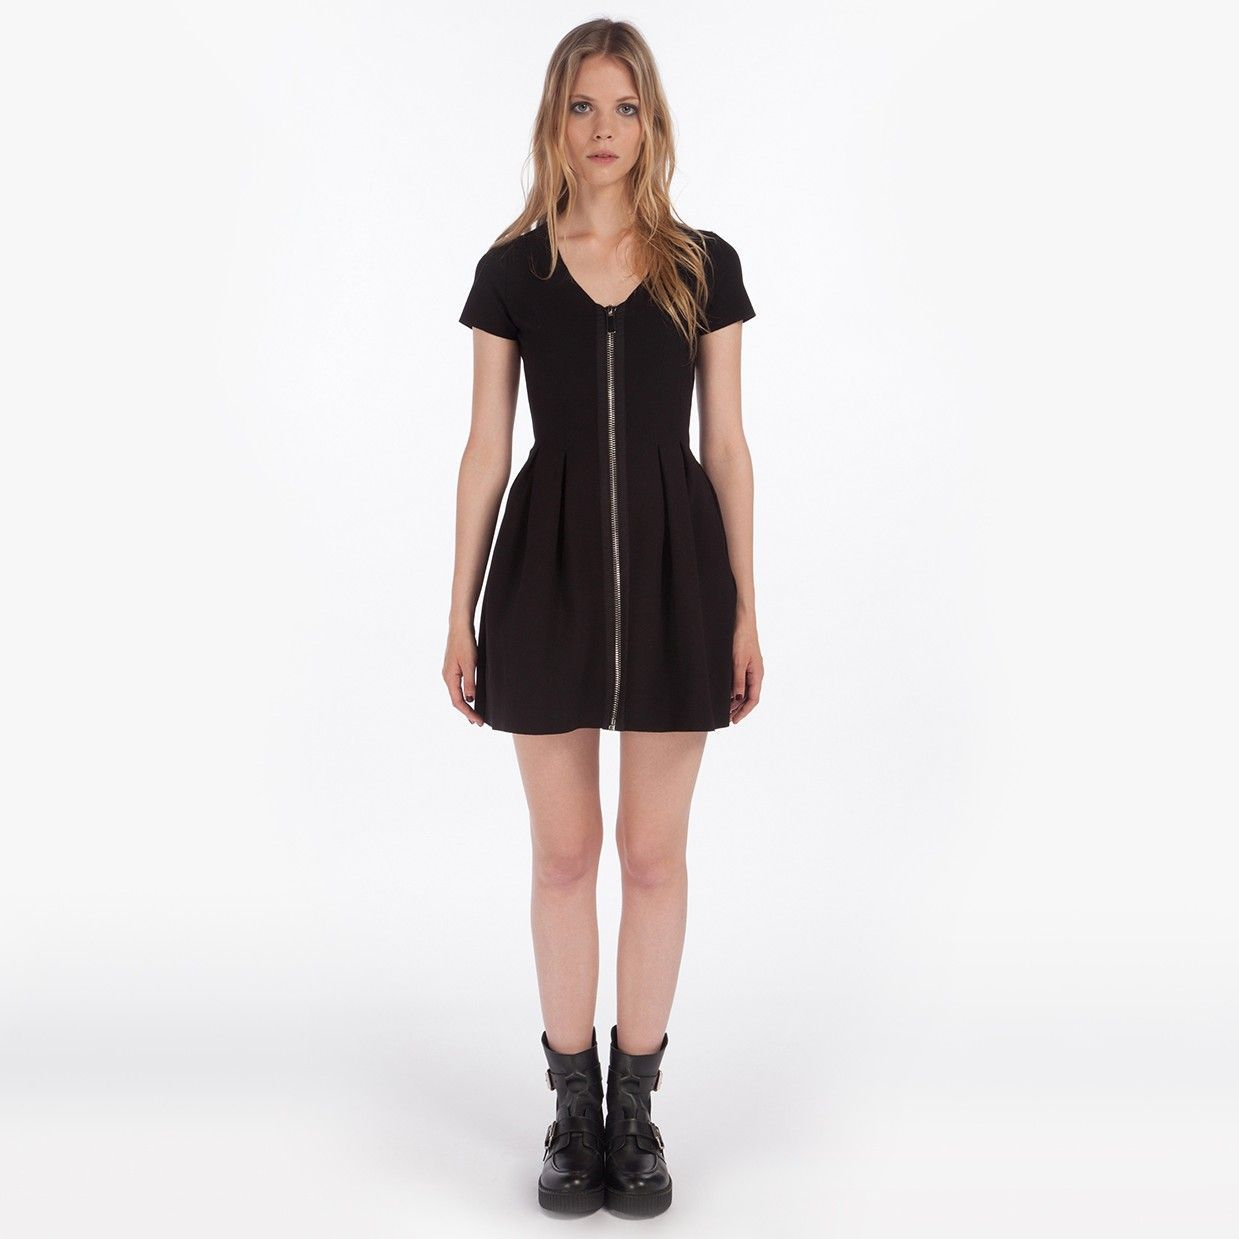 DATYPIC Automne Hiver 2013 Maje | Flare dress, Clothes